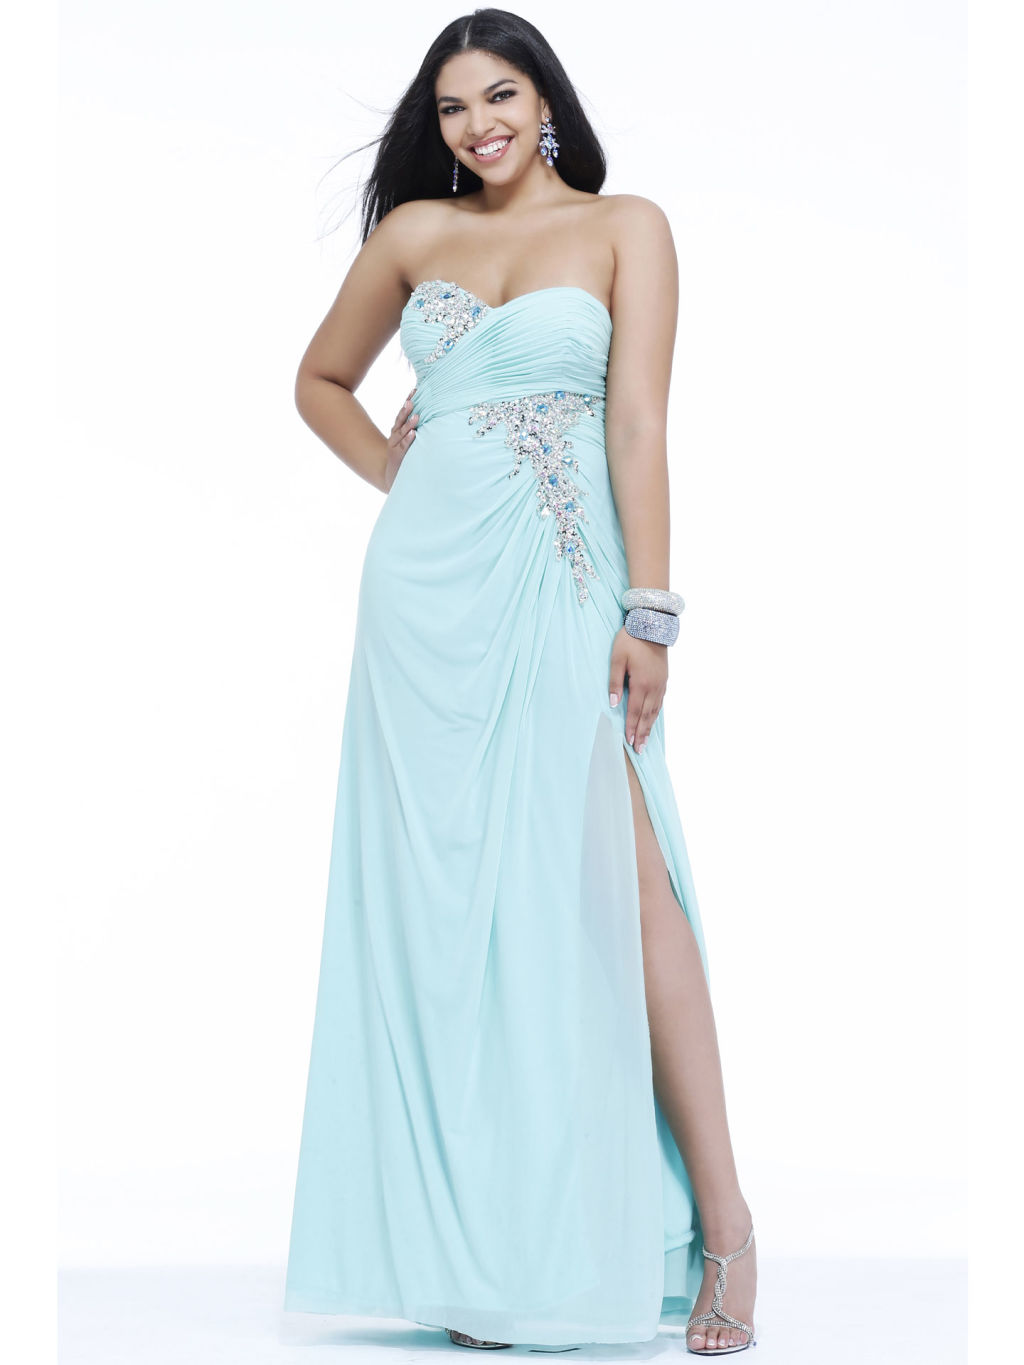 Seventeen Best Prom Dresses - Plus Size Prom Dresses